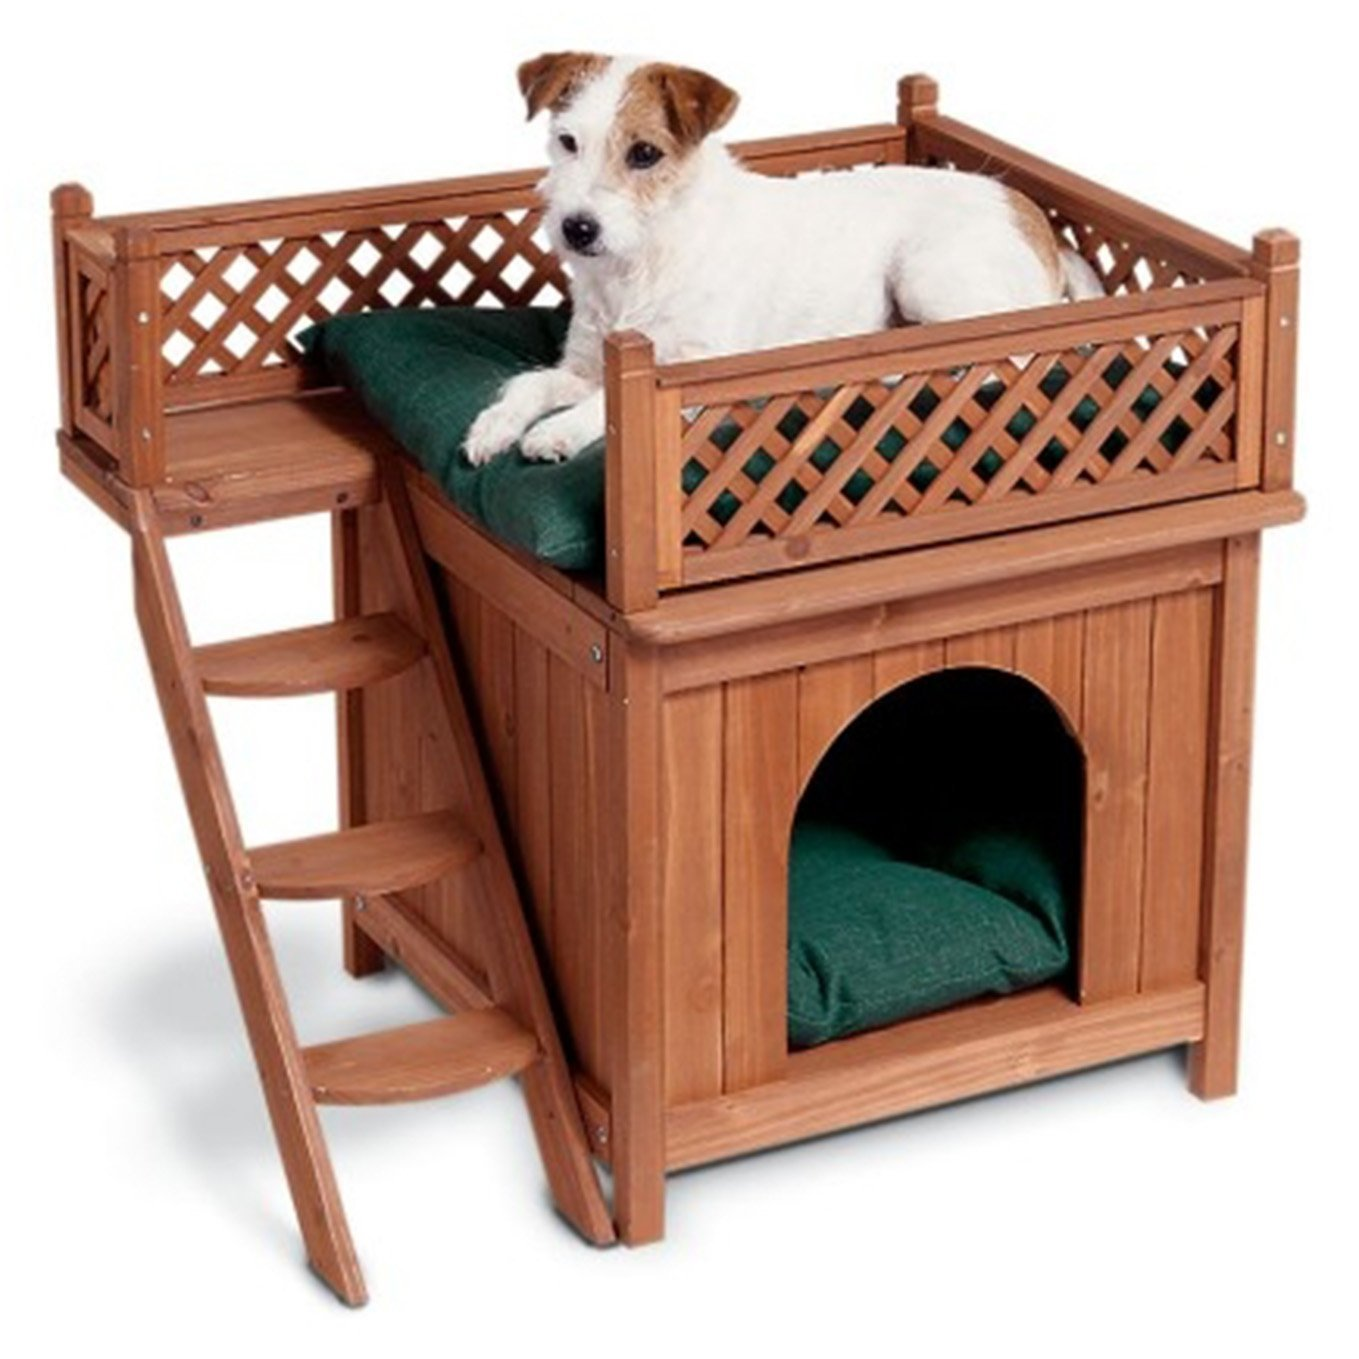 Are you planning on building a dog house? Are you a do-it-yourself type? Perhaps you'll need a dog house kit. Consider the options available.